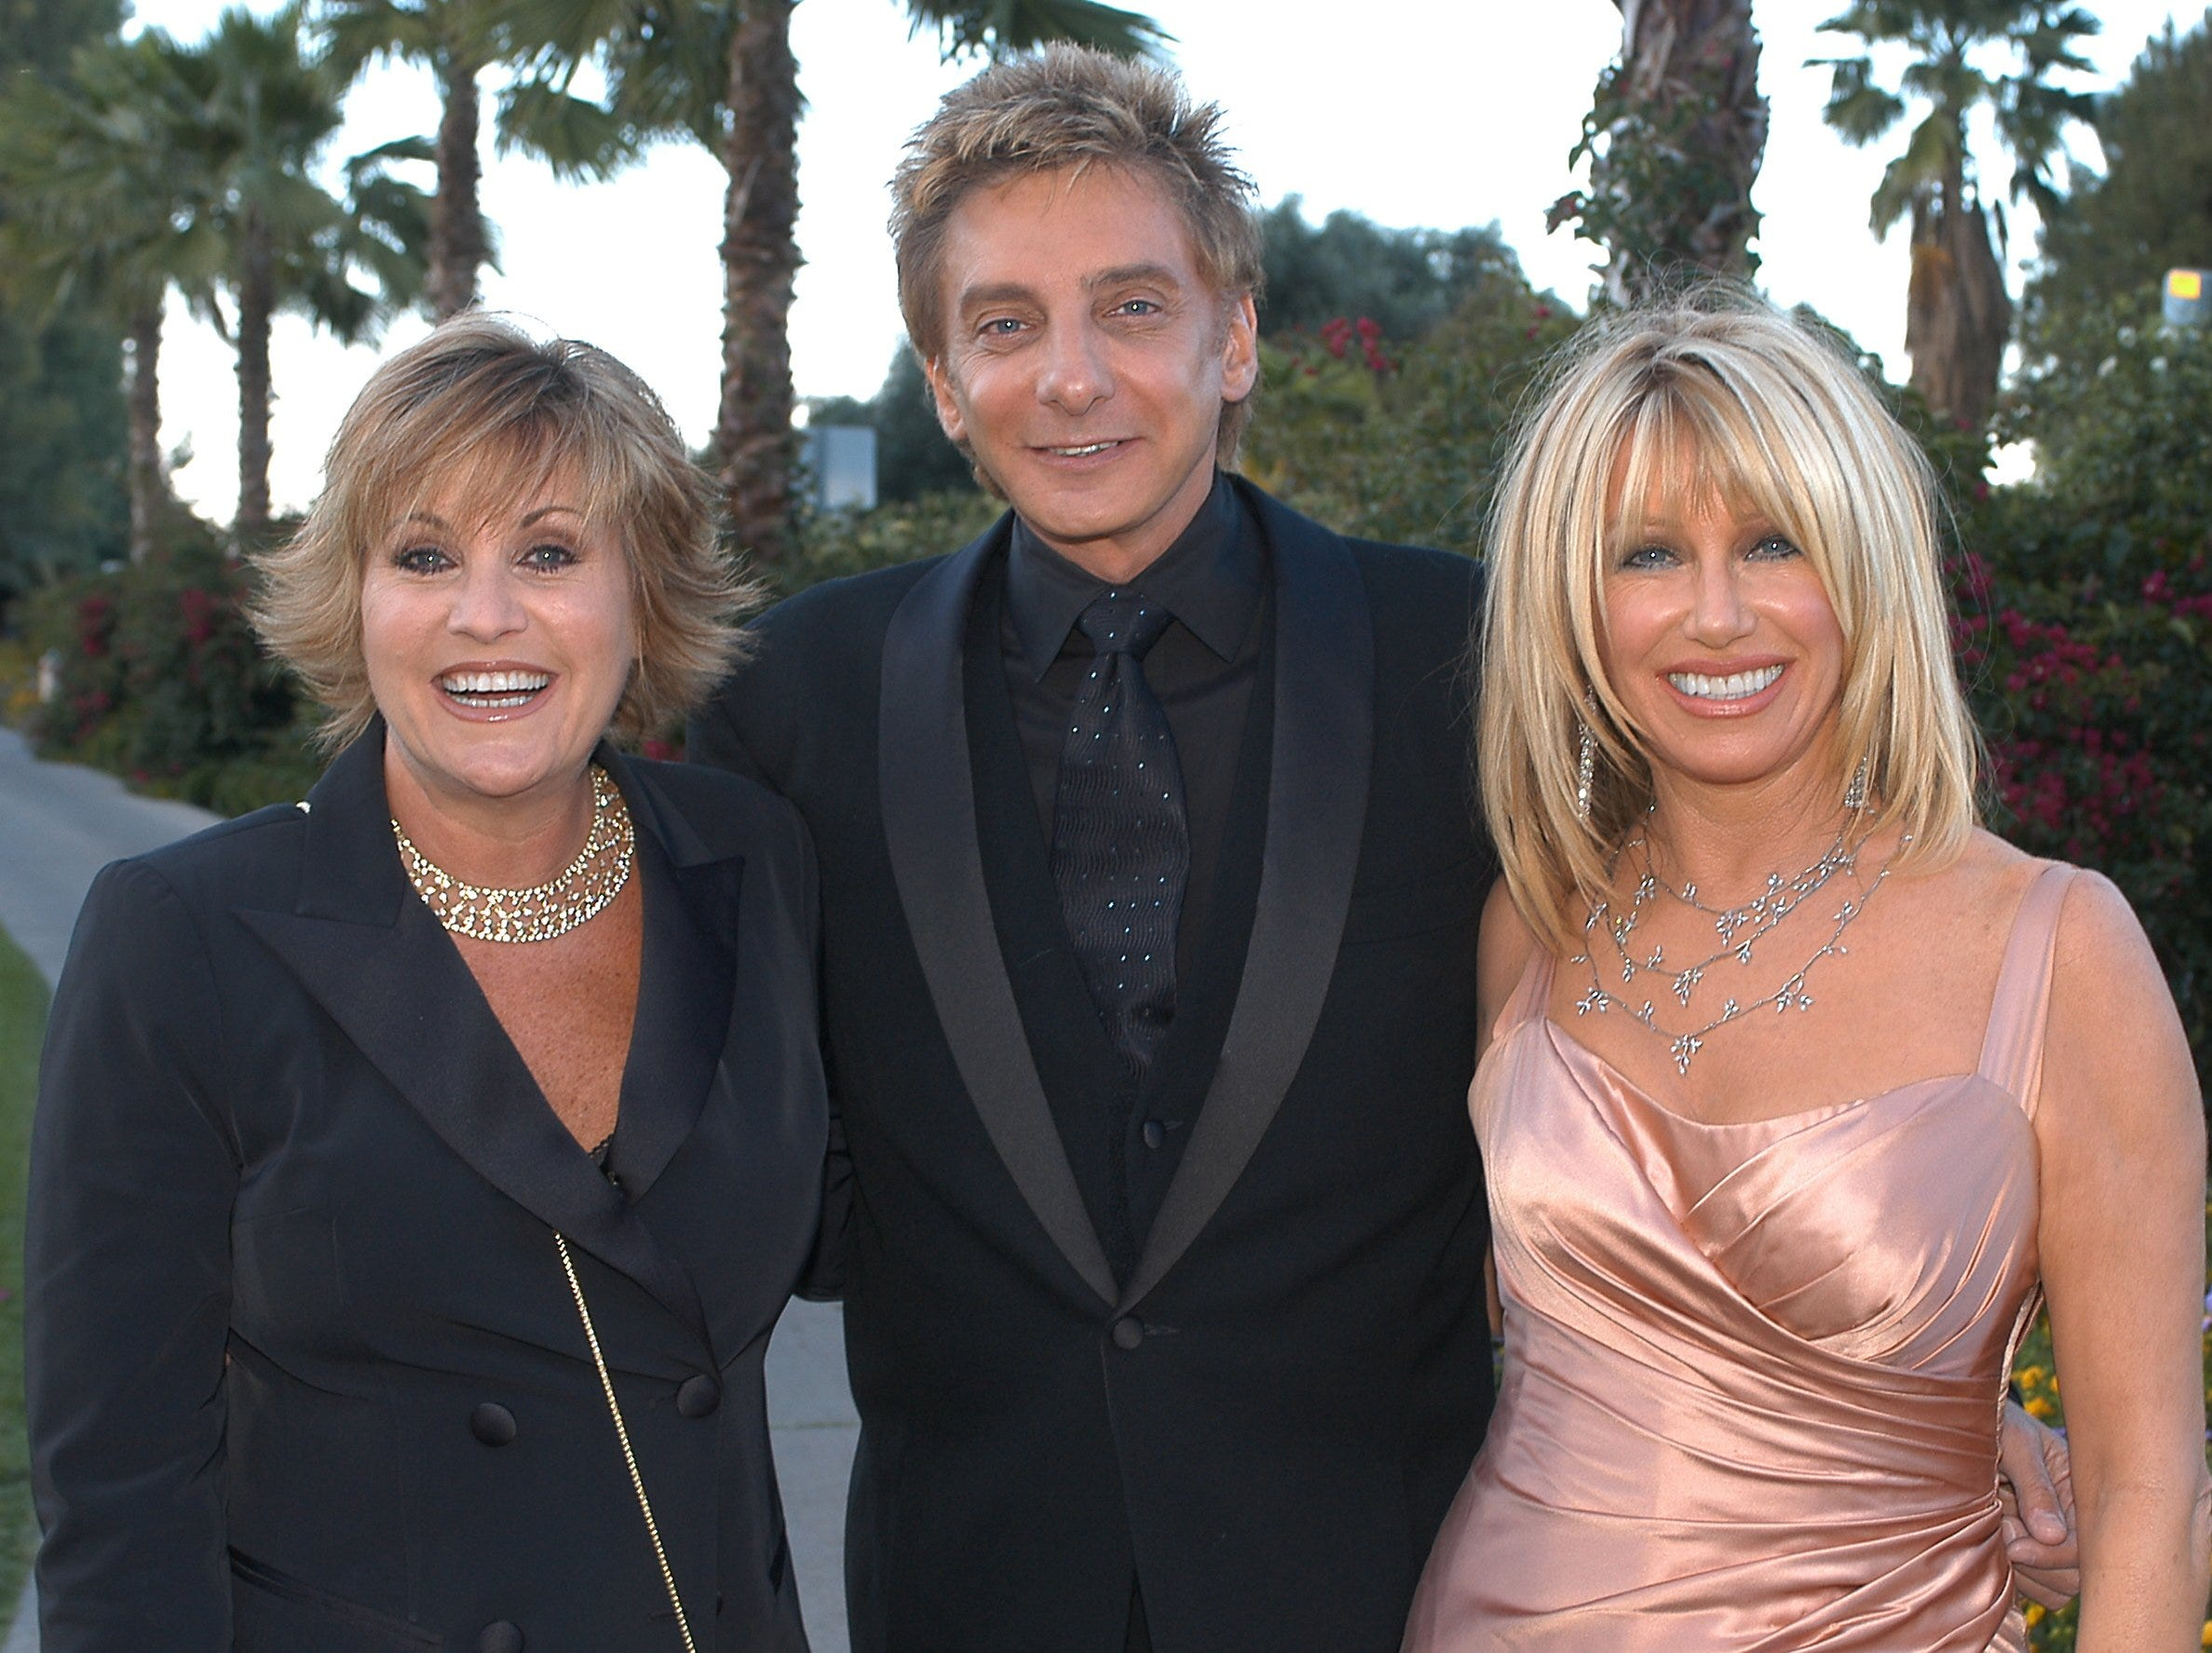 Lorna Luft (left), Barry Manilow and Suzanne Somers arrive at the Aids Assistance Program's Evening Under the Stars in 2003 in Palm Springs, California.